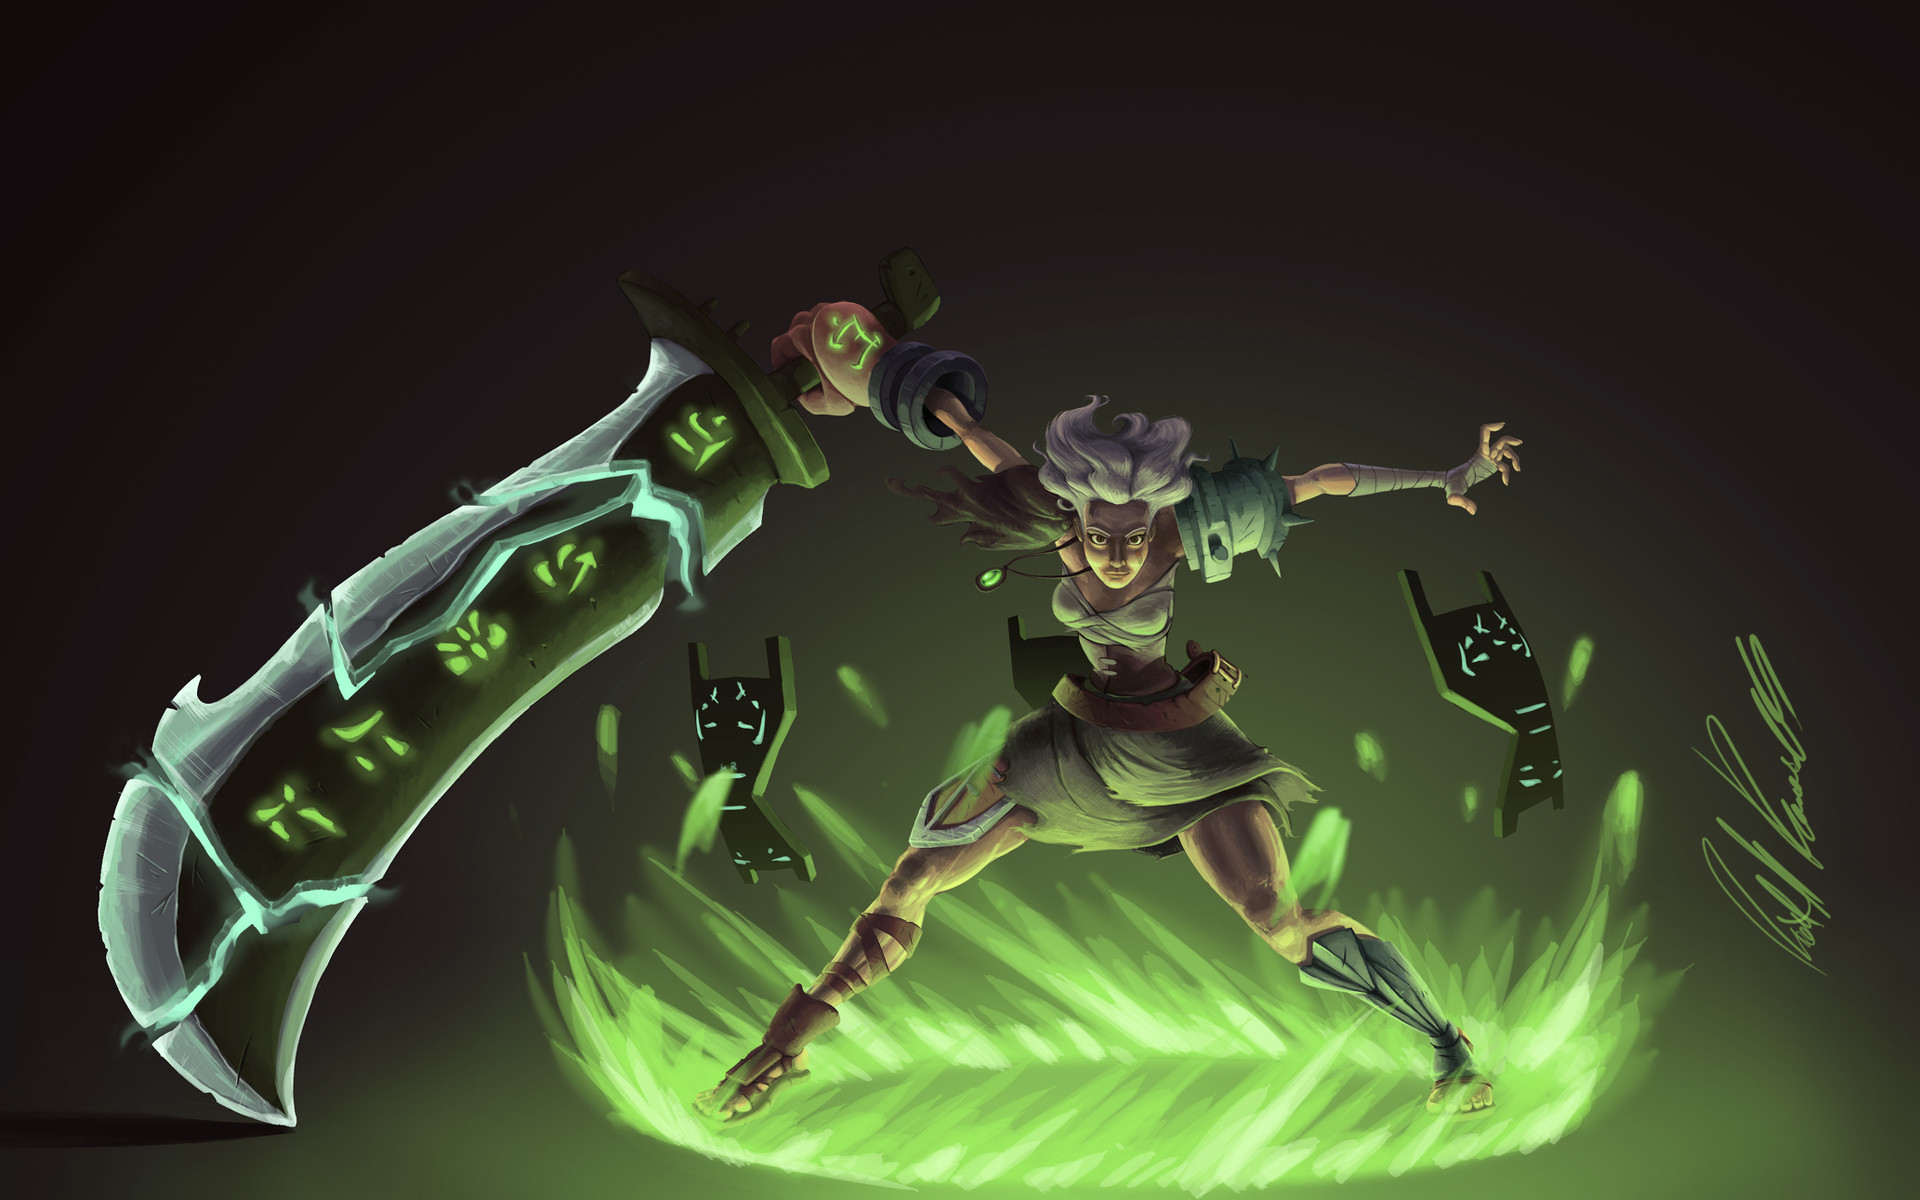 1920x1200 View, download, comment, and rate this  Riven Wallpaper - Wallpaper  Abyss